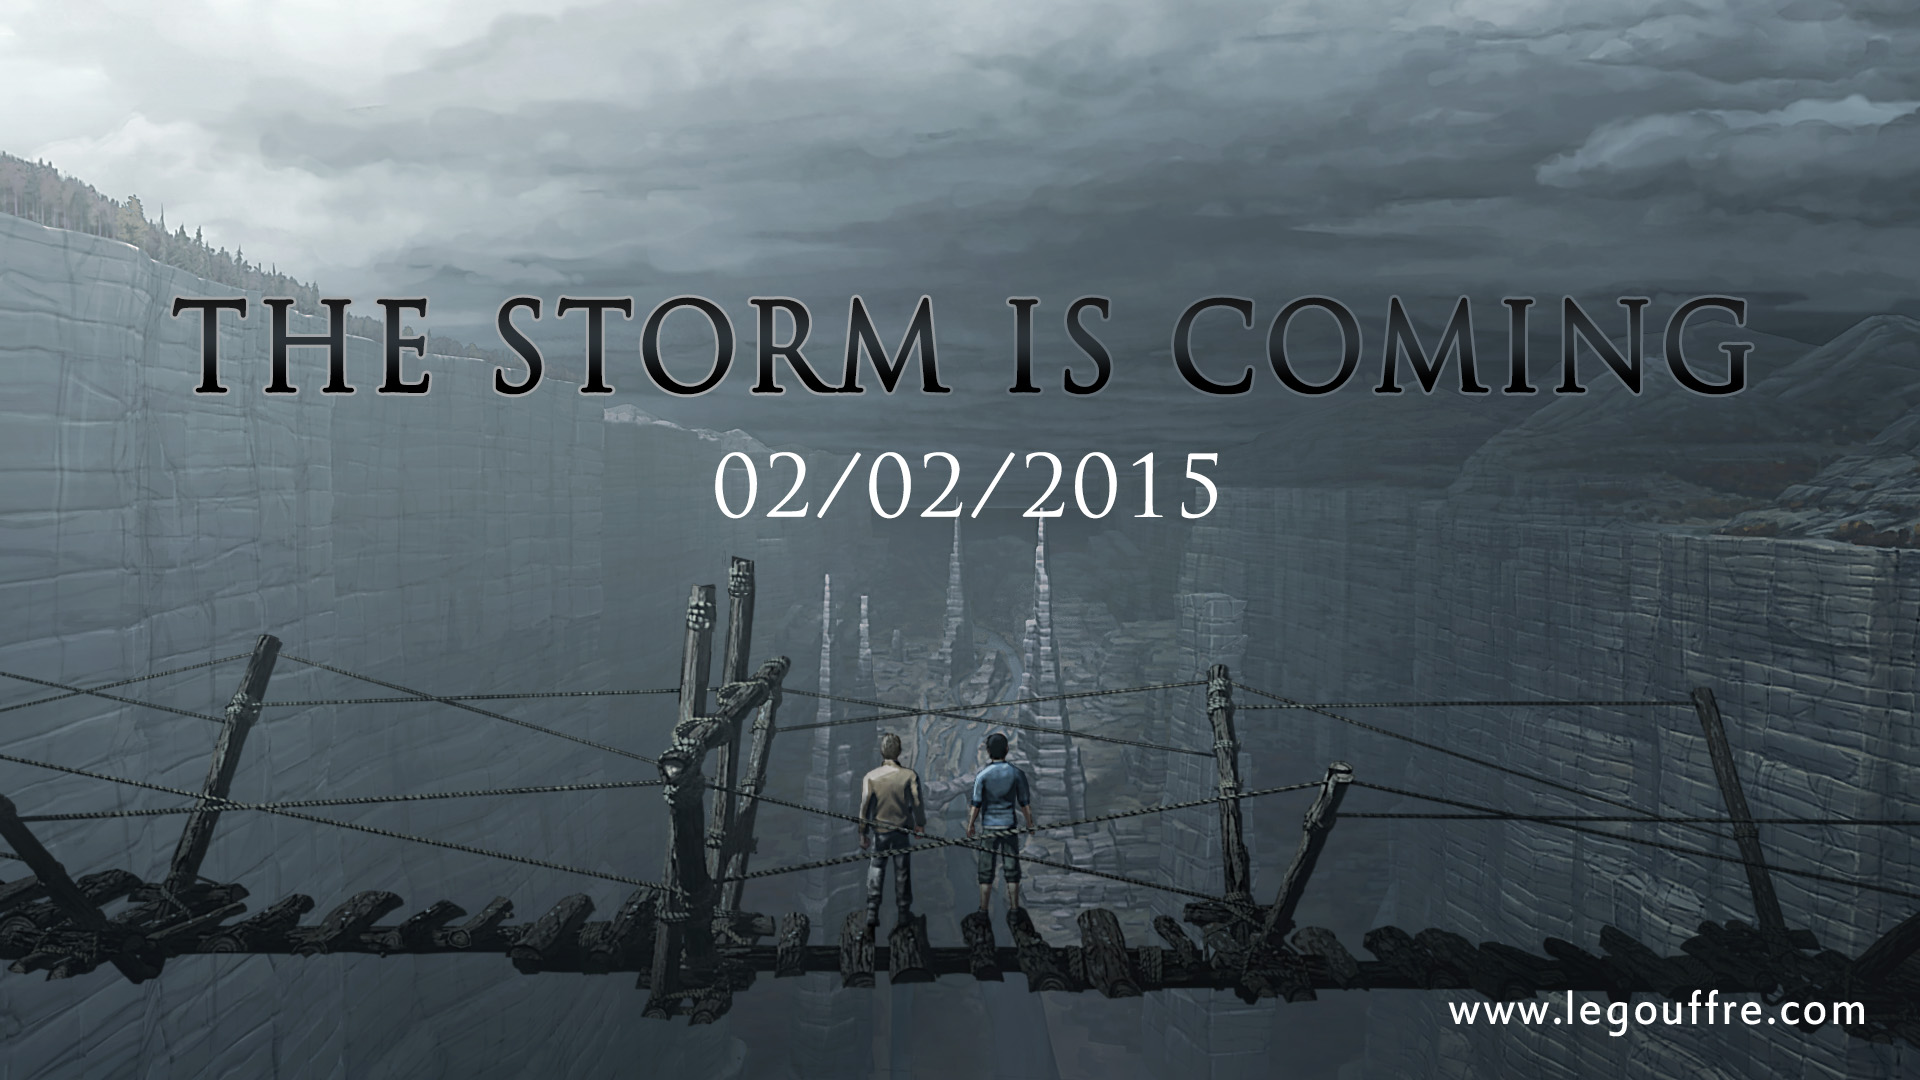 TheStormIsComing